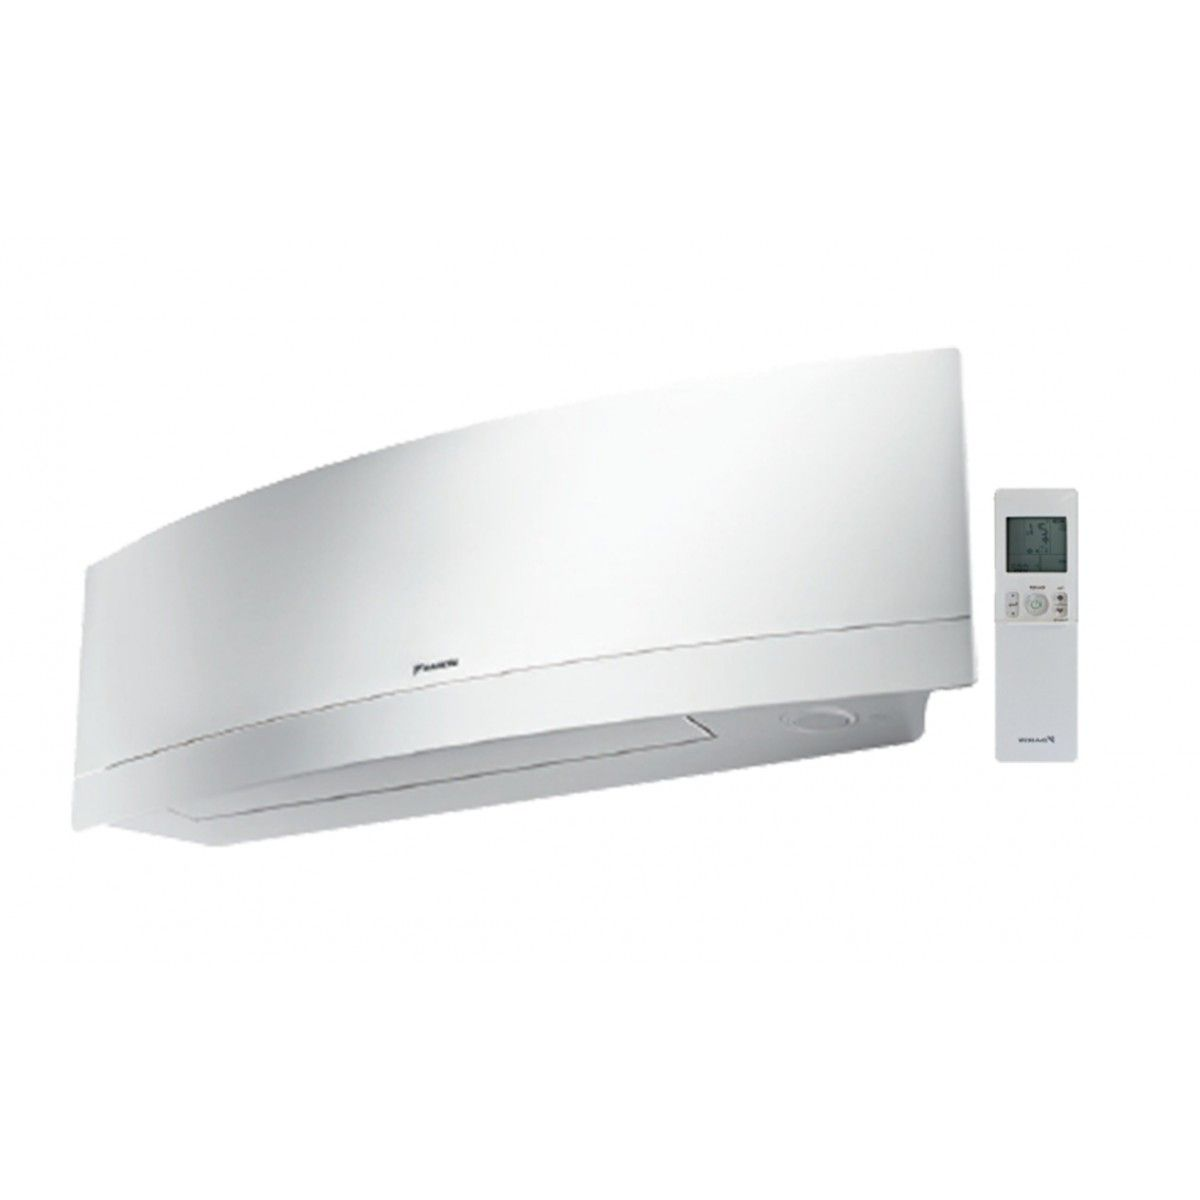 Daikin Emura 12k Btu Wall Mount Indoor Air Handler White